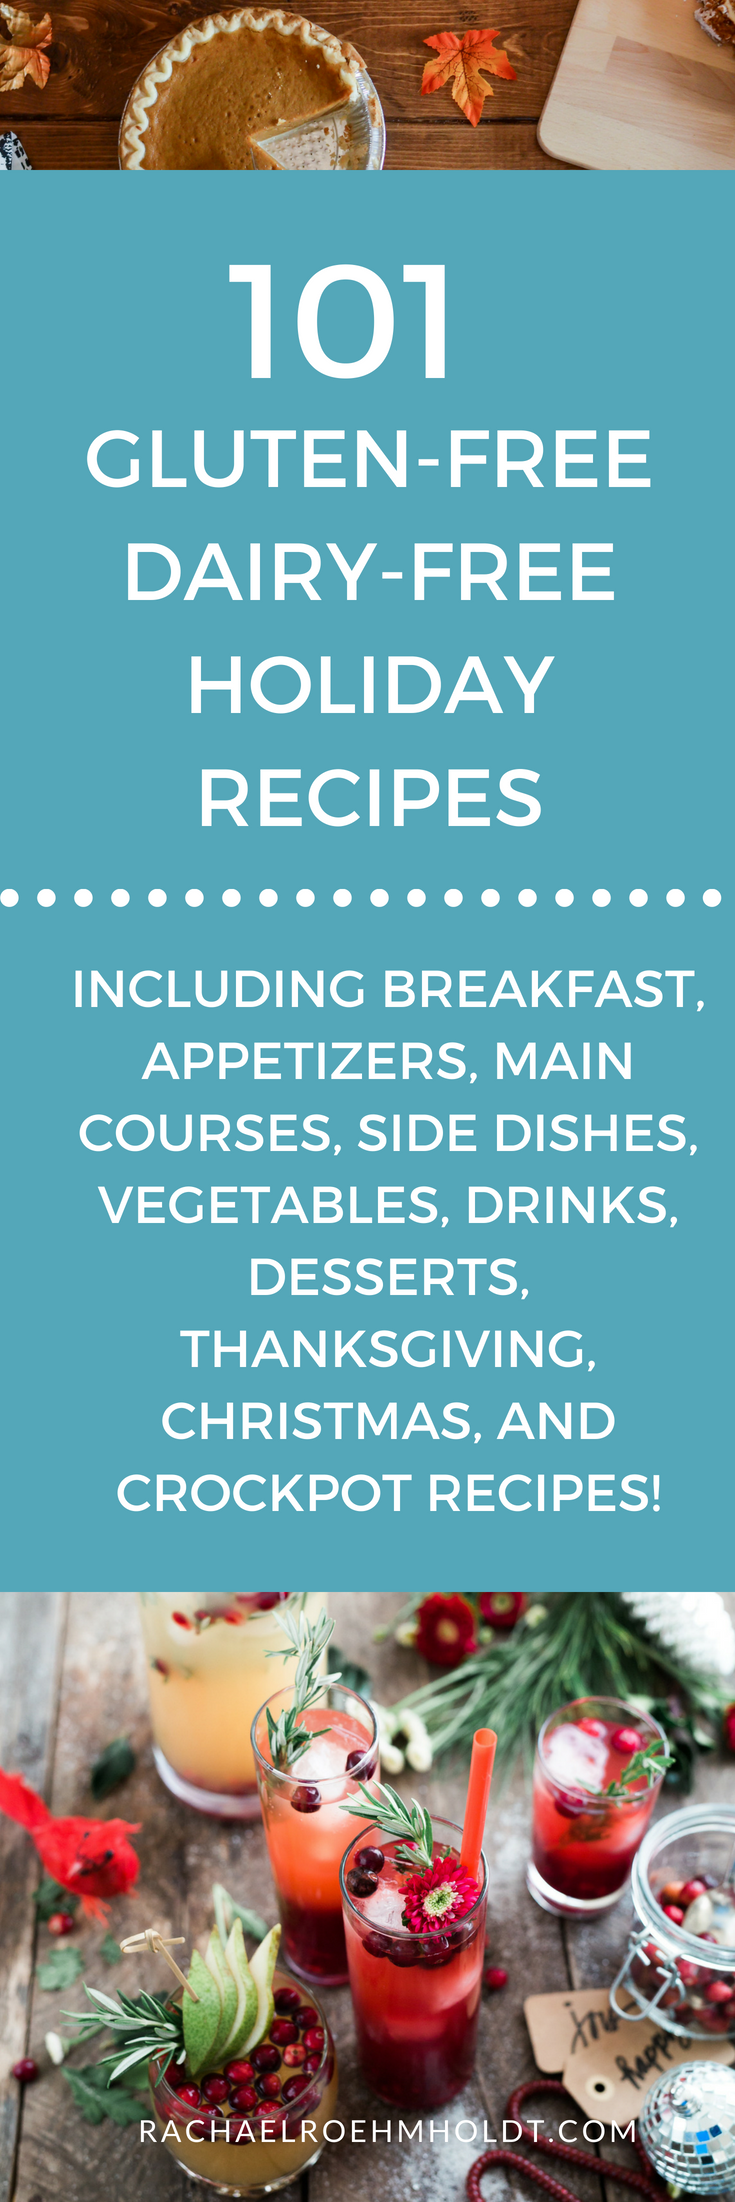 101 Gluten-free Dairy-free Holiday Recipes. Included in this gluten-free dairy-free recipe roundup are: breakfast, appetizers, main courses, Thanksgiving, Christmas, crock pot, side dishes, vegetable, drinks, and dessert recipes. Click through to check out all the awesome recipes at RachaelRoehmholdt.com.